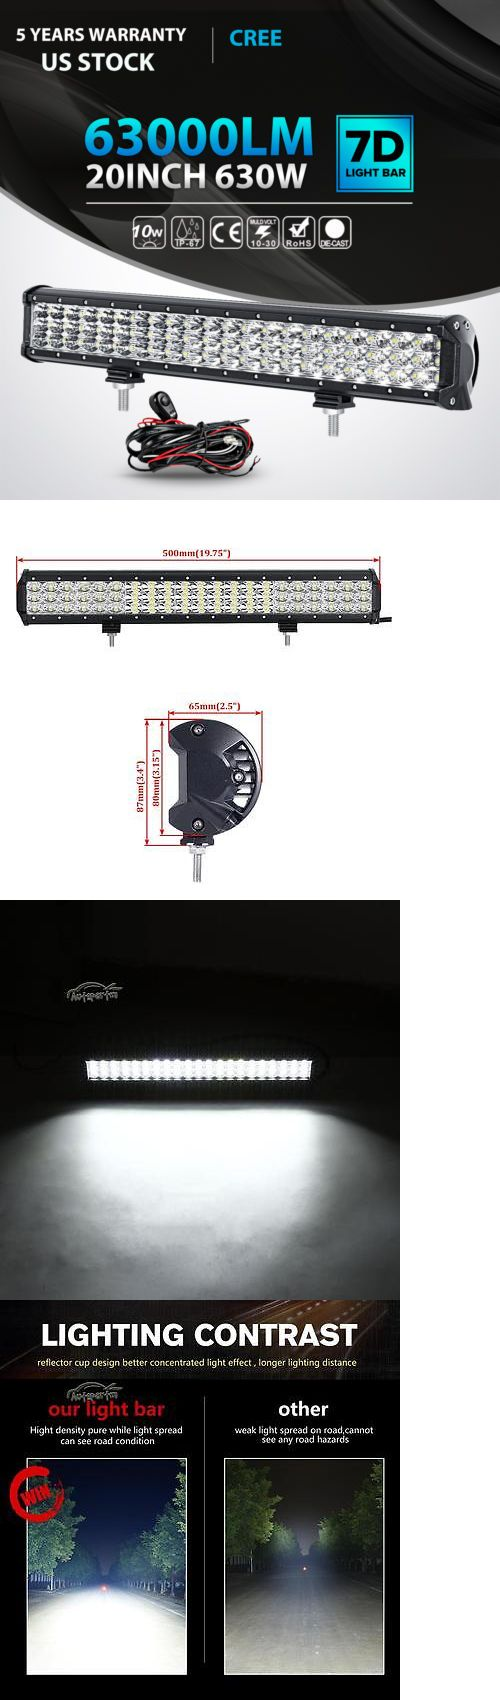 Car Lighting: 20Inch 630W Cree Tri Row Led Light Bar Spot Flood Work Lamp Ute Atv 22 23 24 -> BUY IT NOW ONLY: $48.5 on eBay!